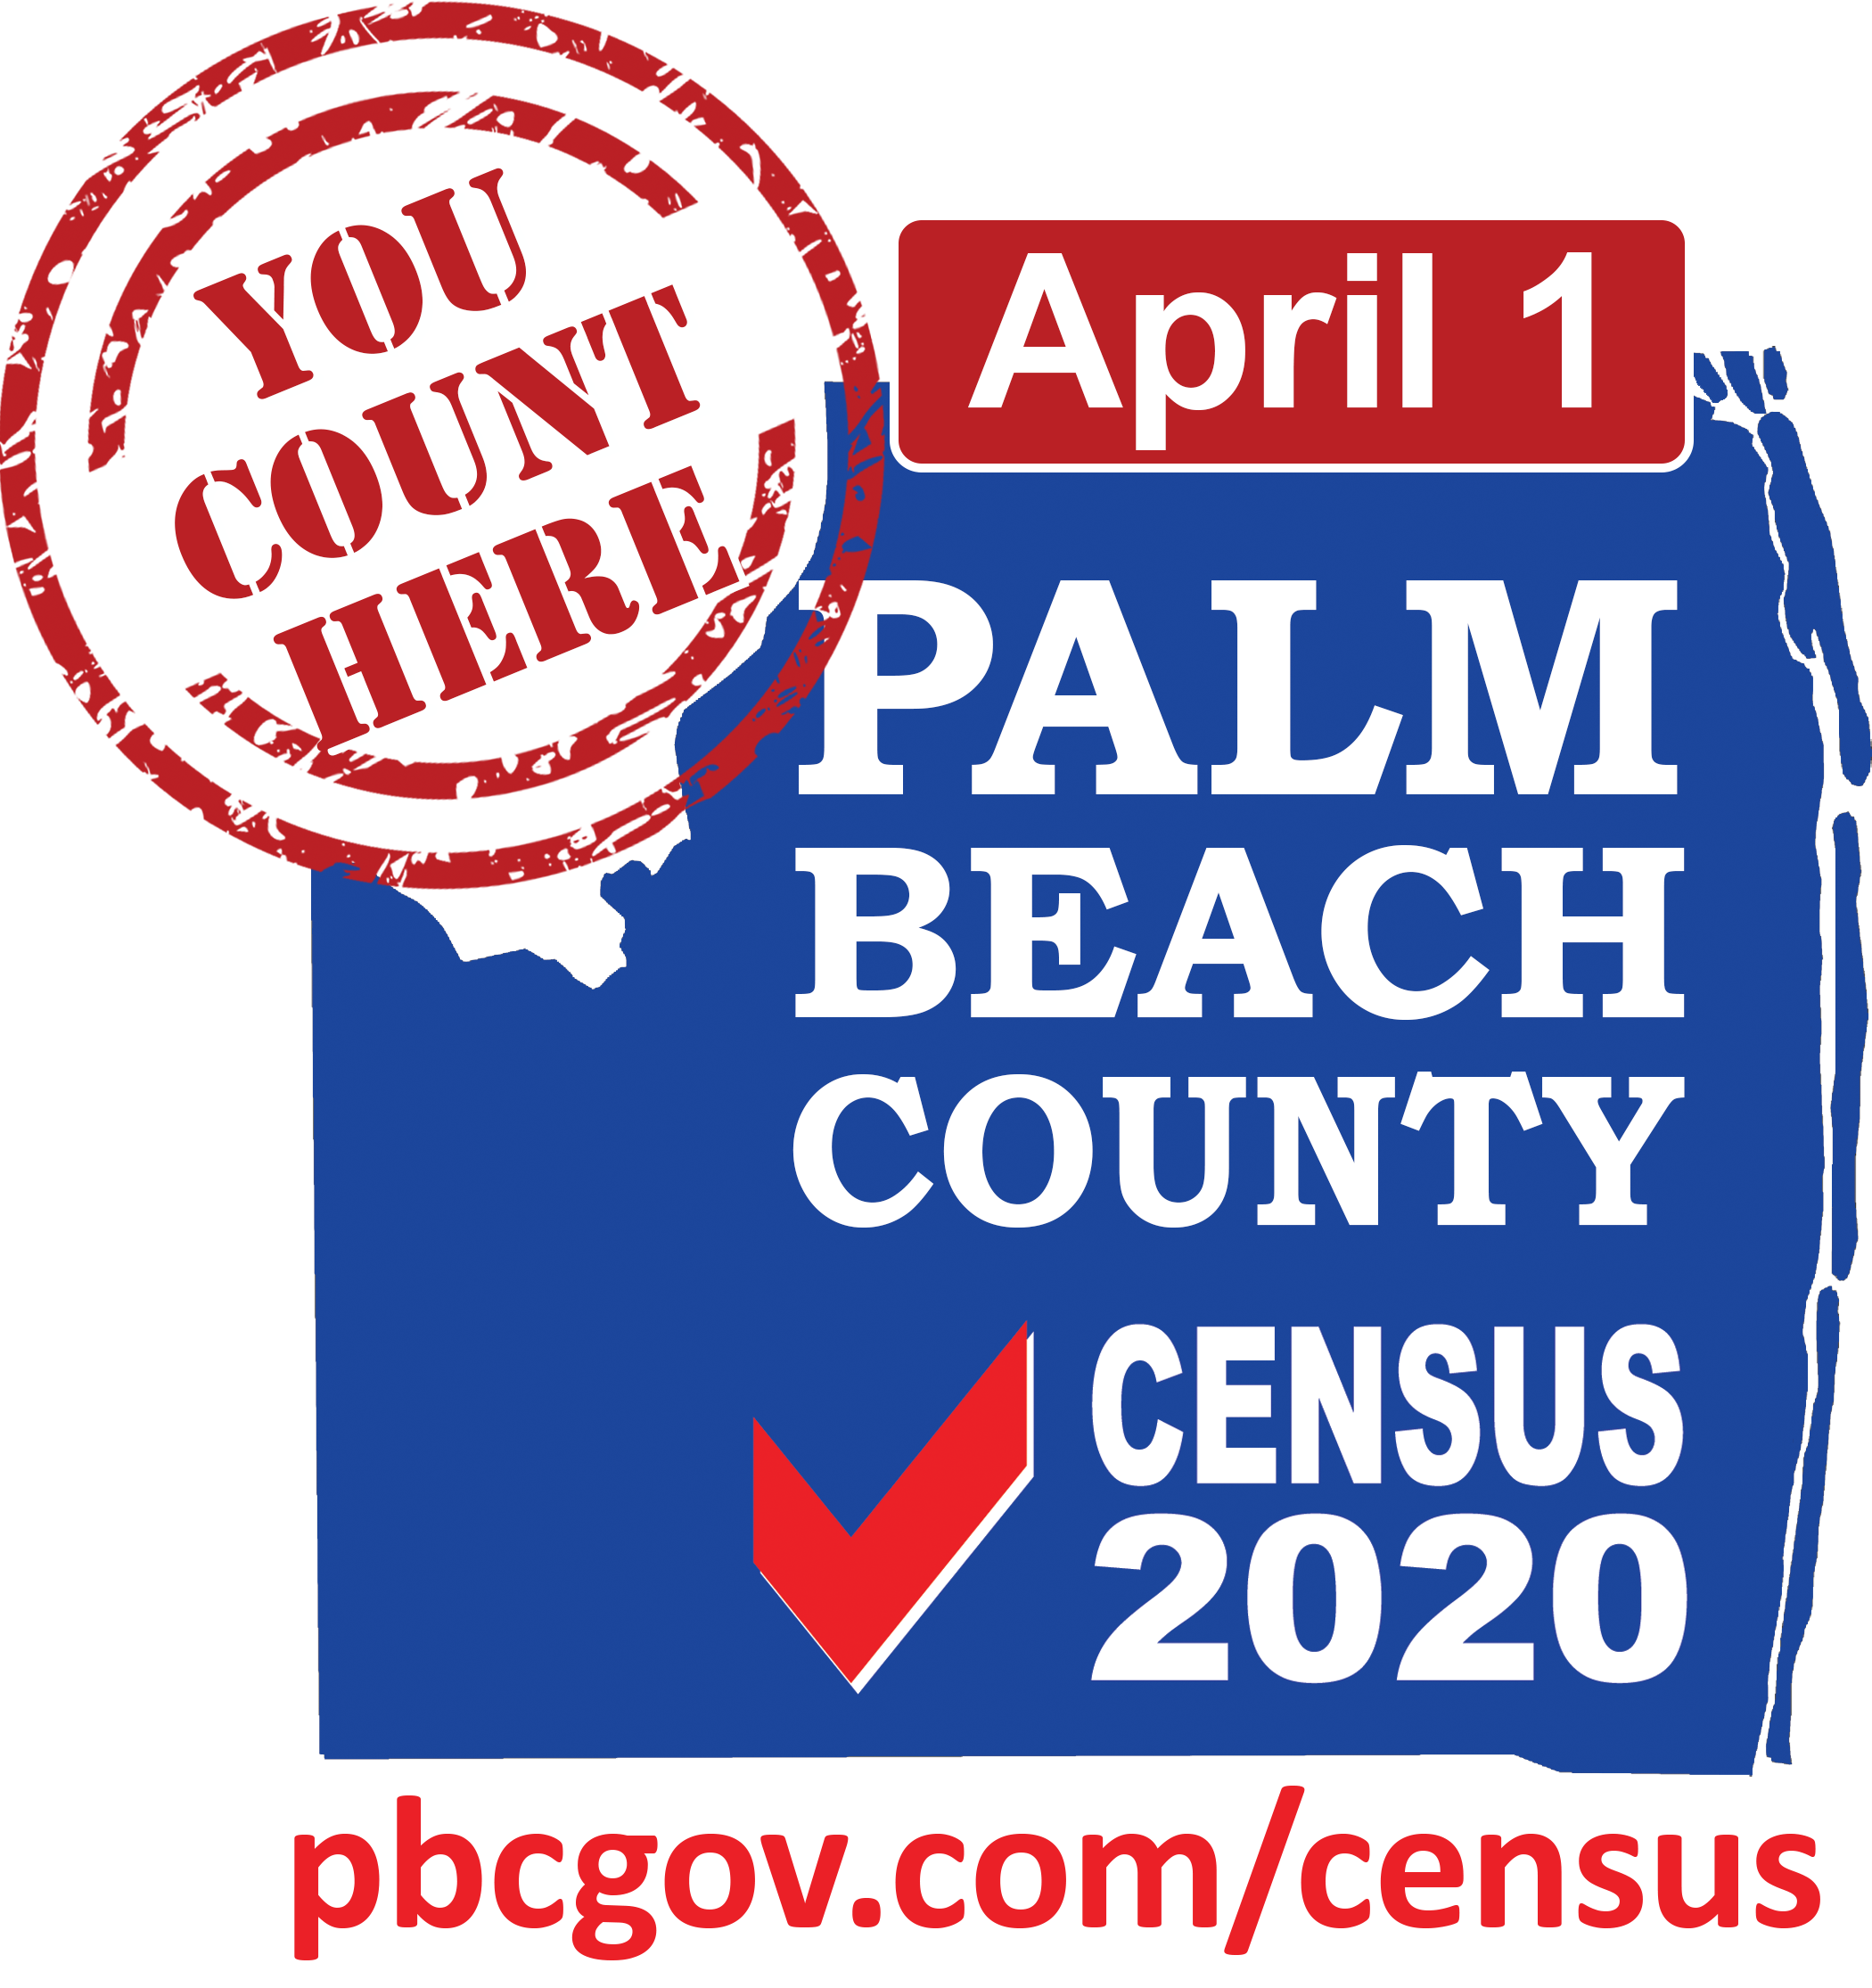 http://pbcspauthor/census/SiteImages/CENSUS-PBC-logo-new-april-1.png